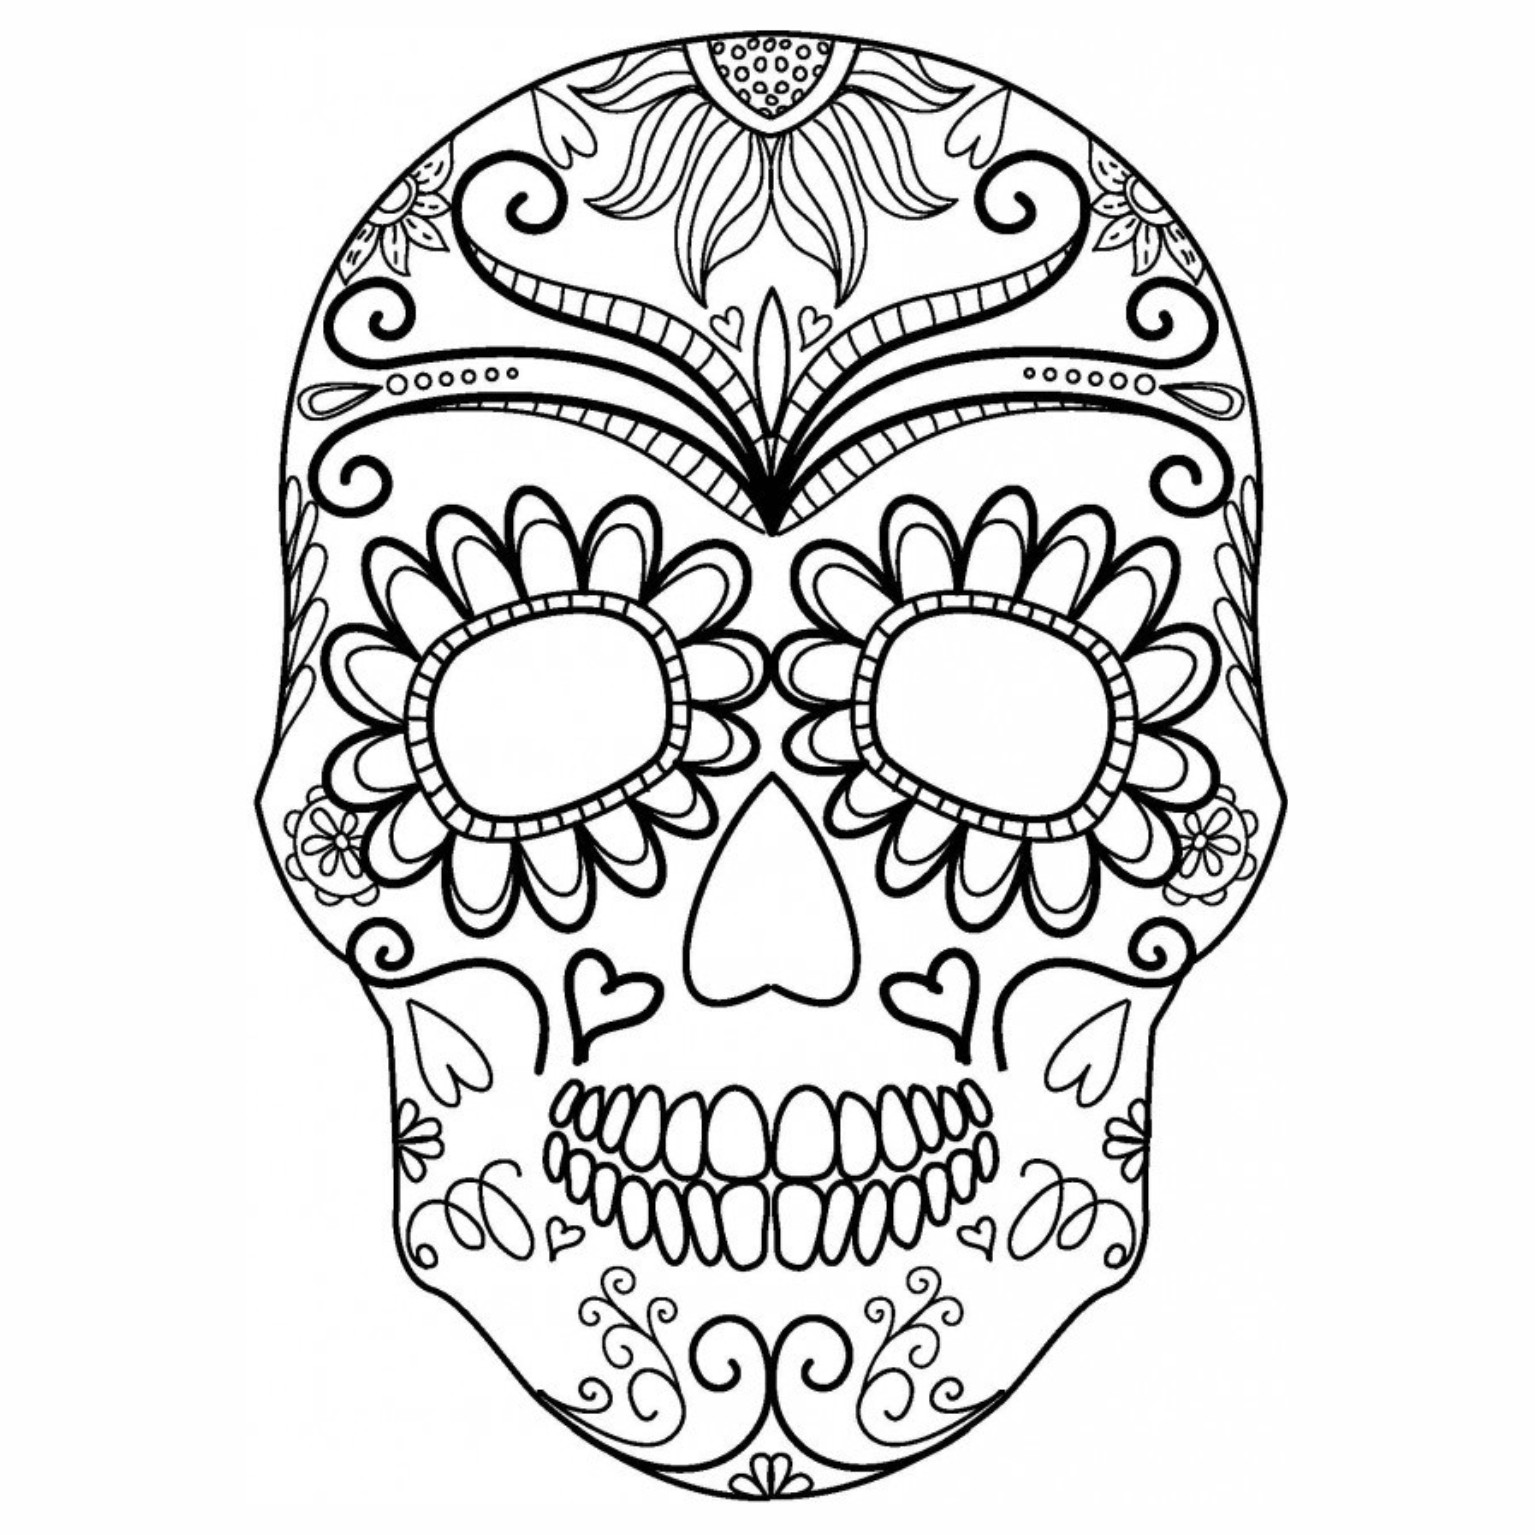 Skeleton Skull Drawing At Getdrawings Free For Personal Use